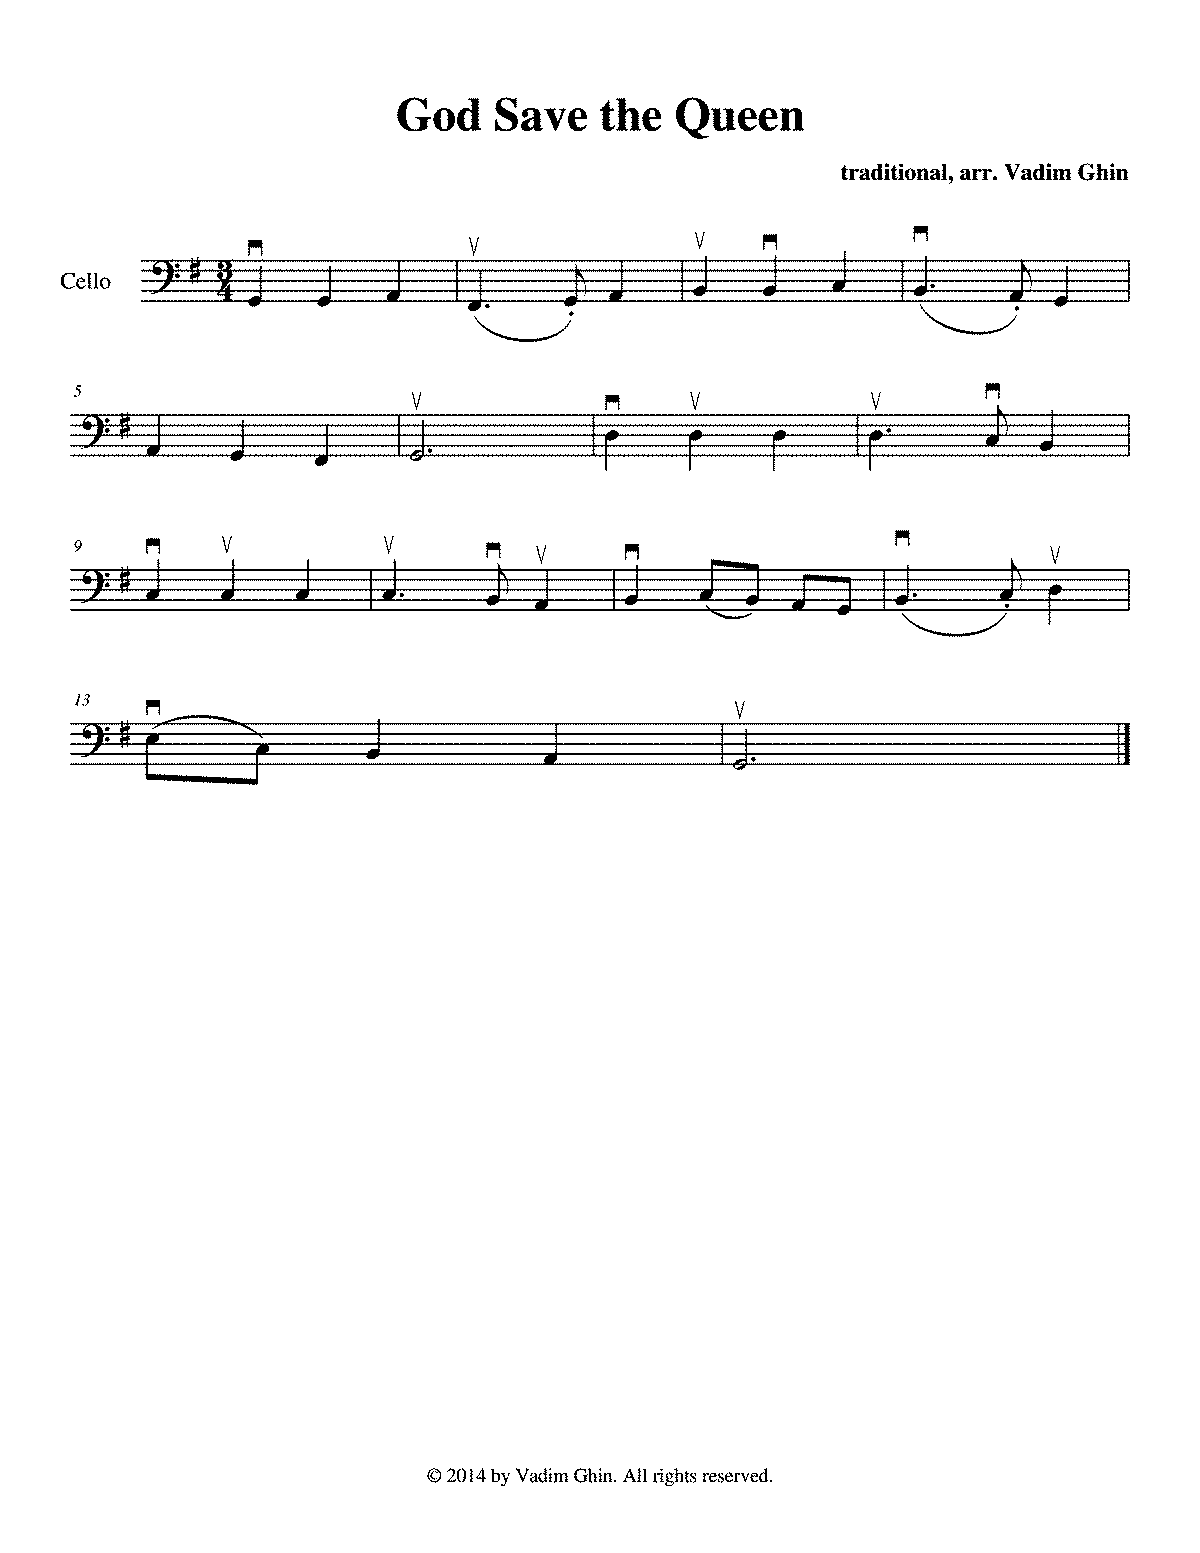 PMLP672496-God Save the Queen for Cello solo.pdf